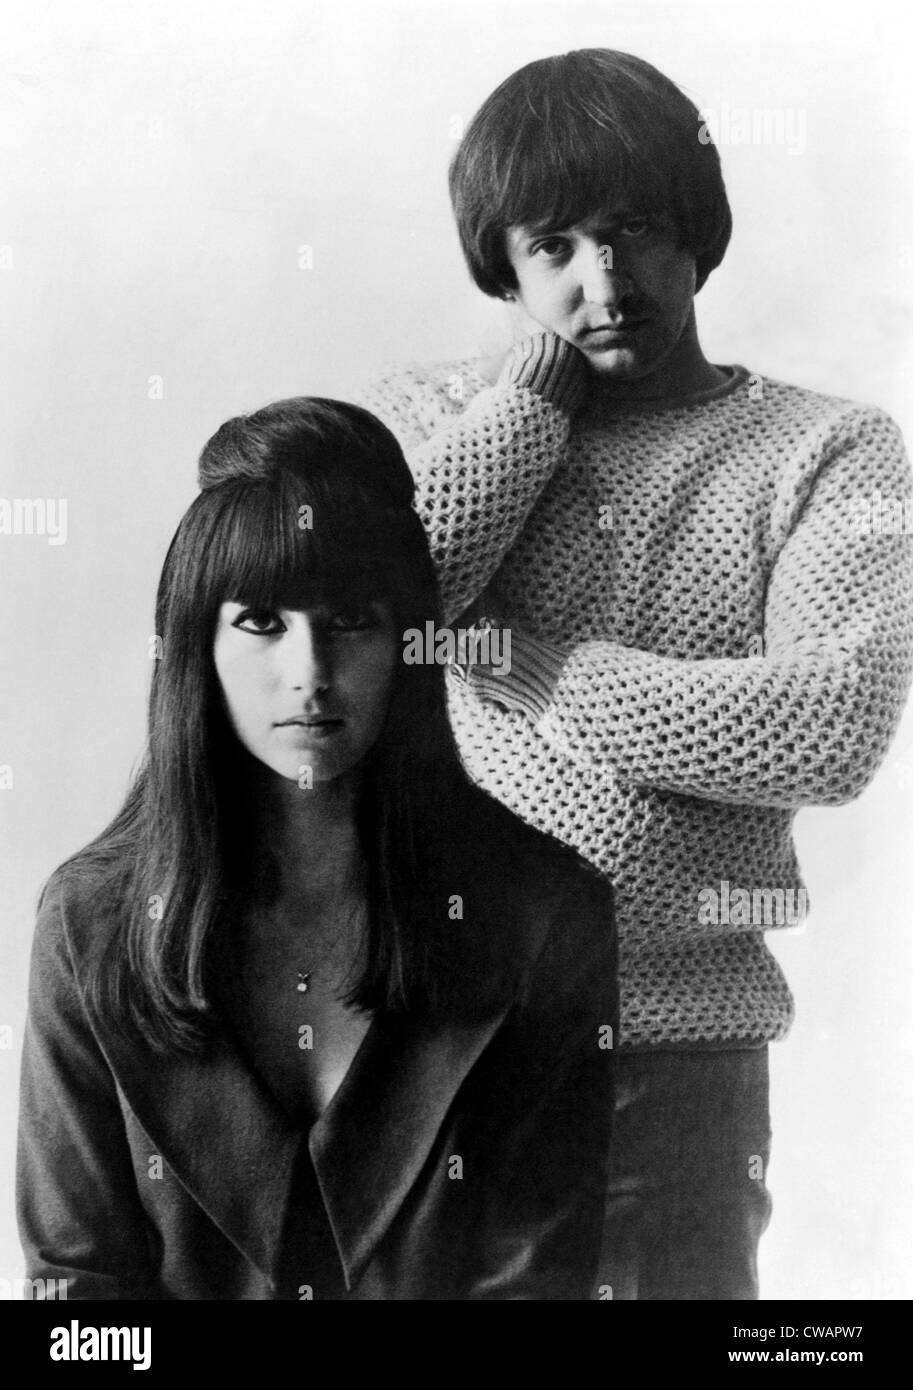 Sonny And Cher Stock Photos Amp Sonny And Cher Stock Images